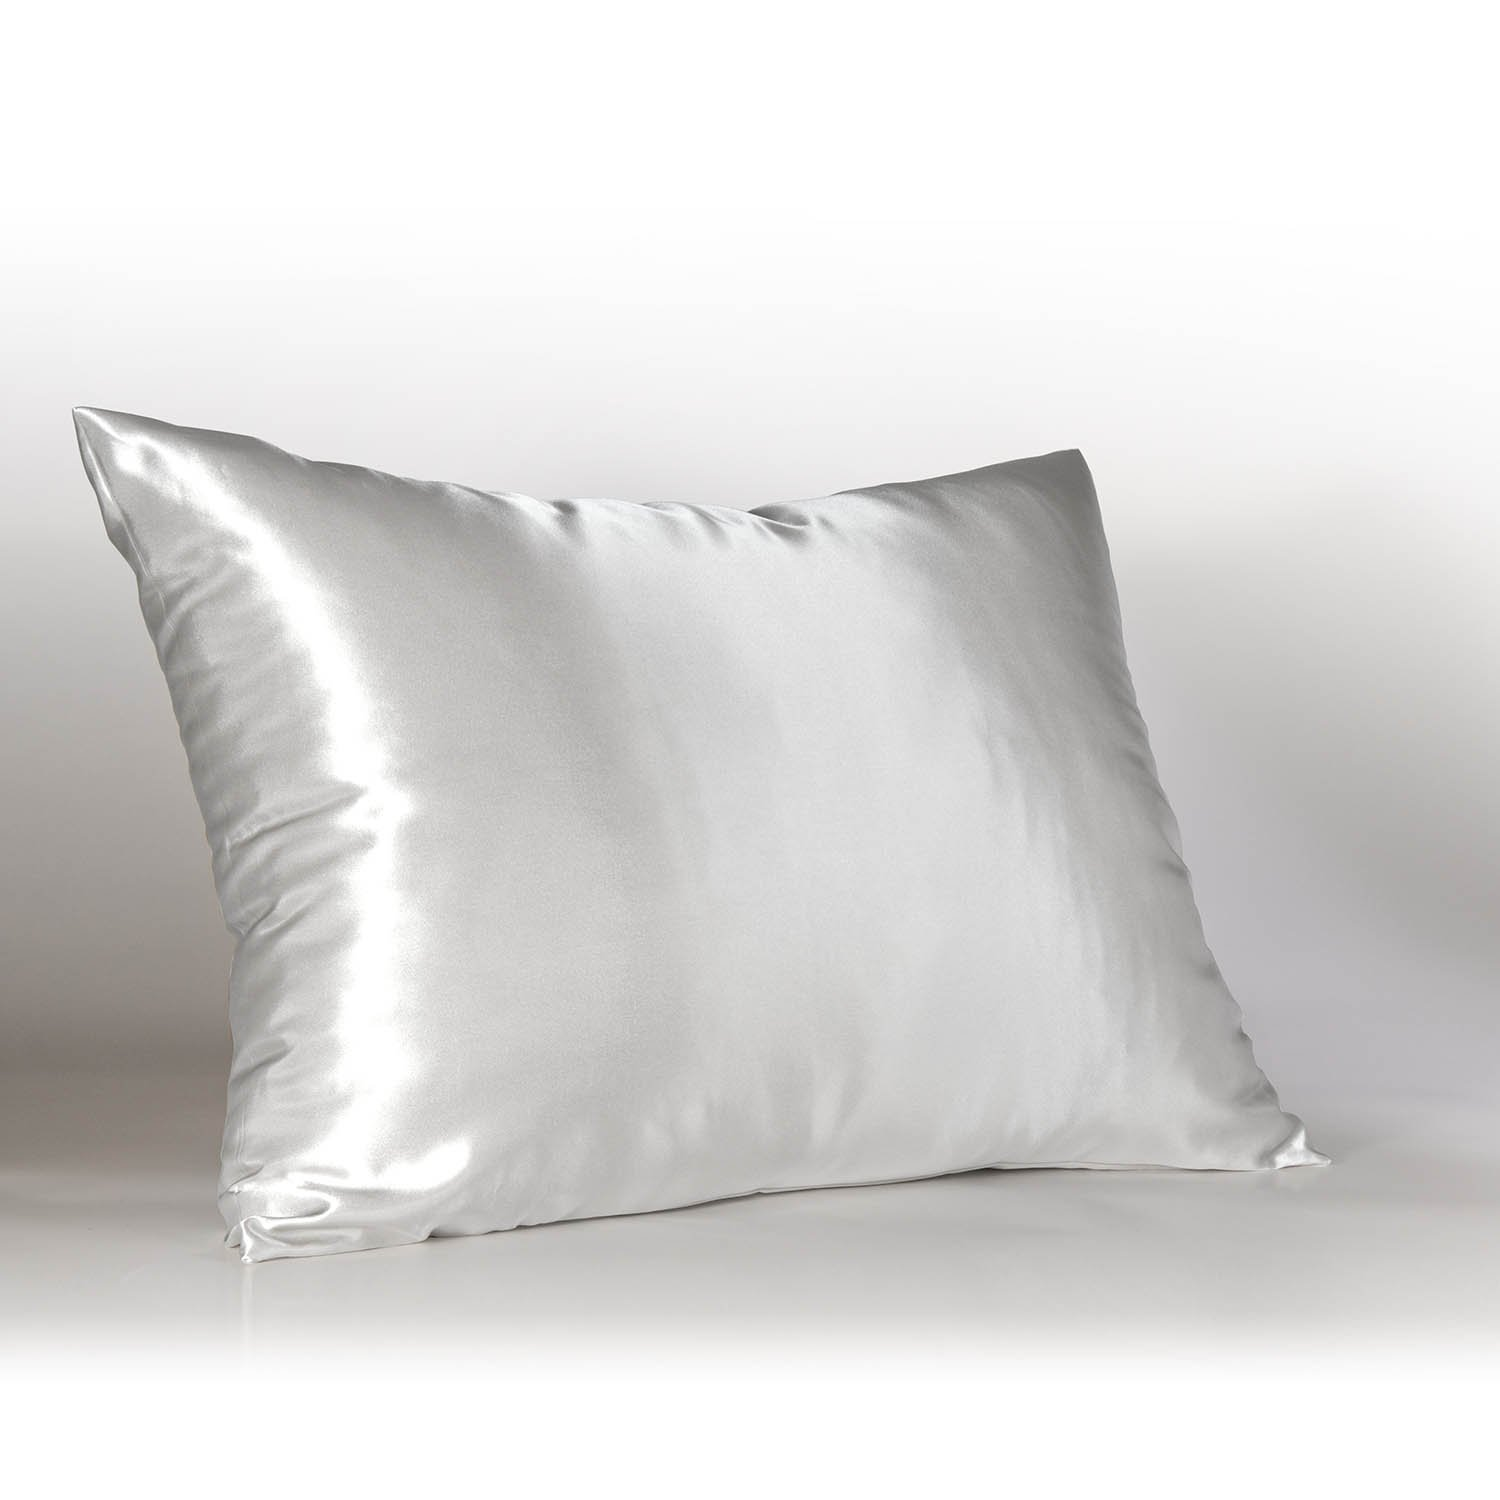 Cheap white pillowcases for crafts - Sweet Dreams Luxury Satin Pillowcase With Zipper Standard Size White Silky Satin Pillow Case For Hair By Shop Bedding